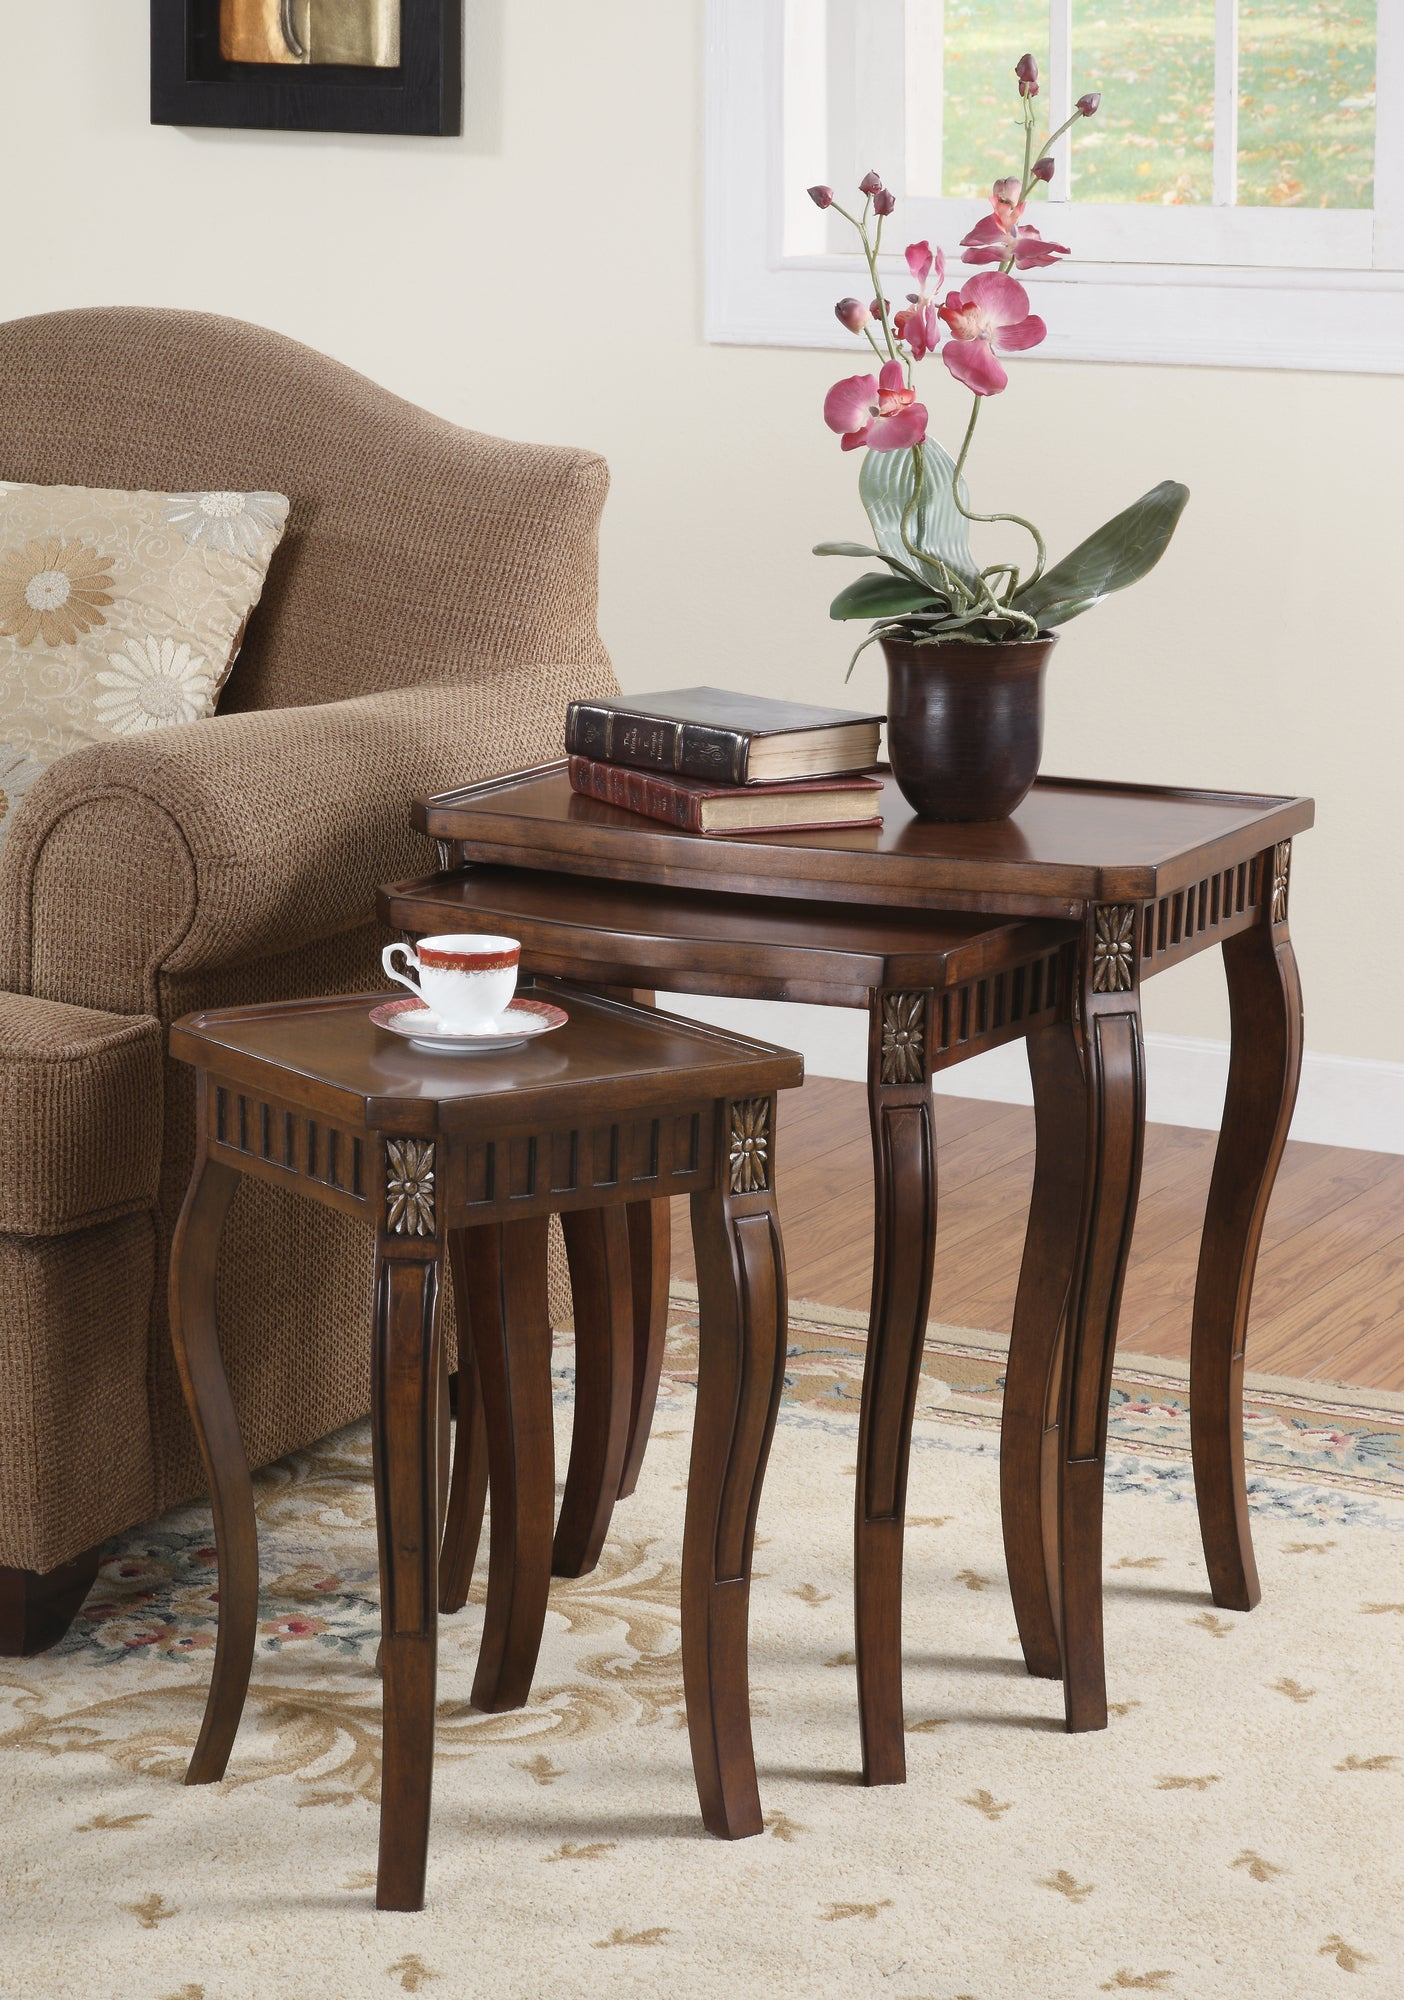 Coaster Cherry 3 Piece Nesting Table Set